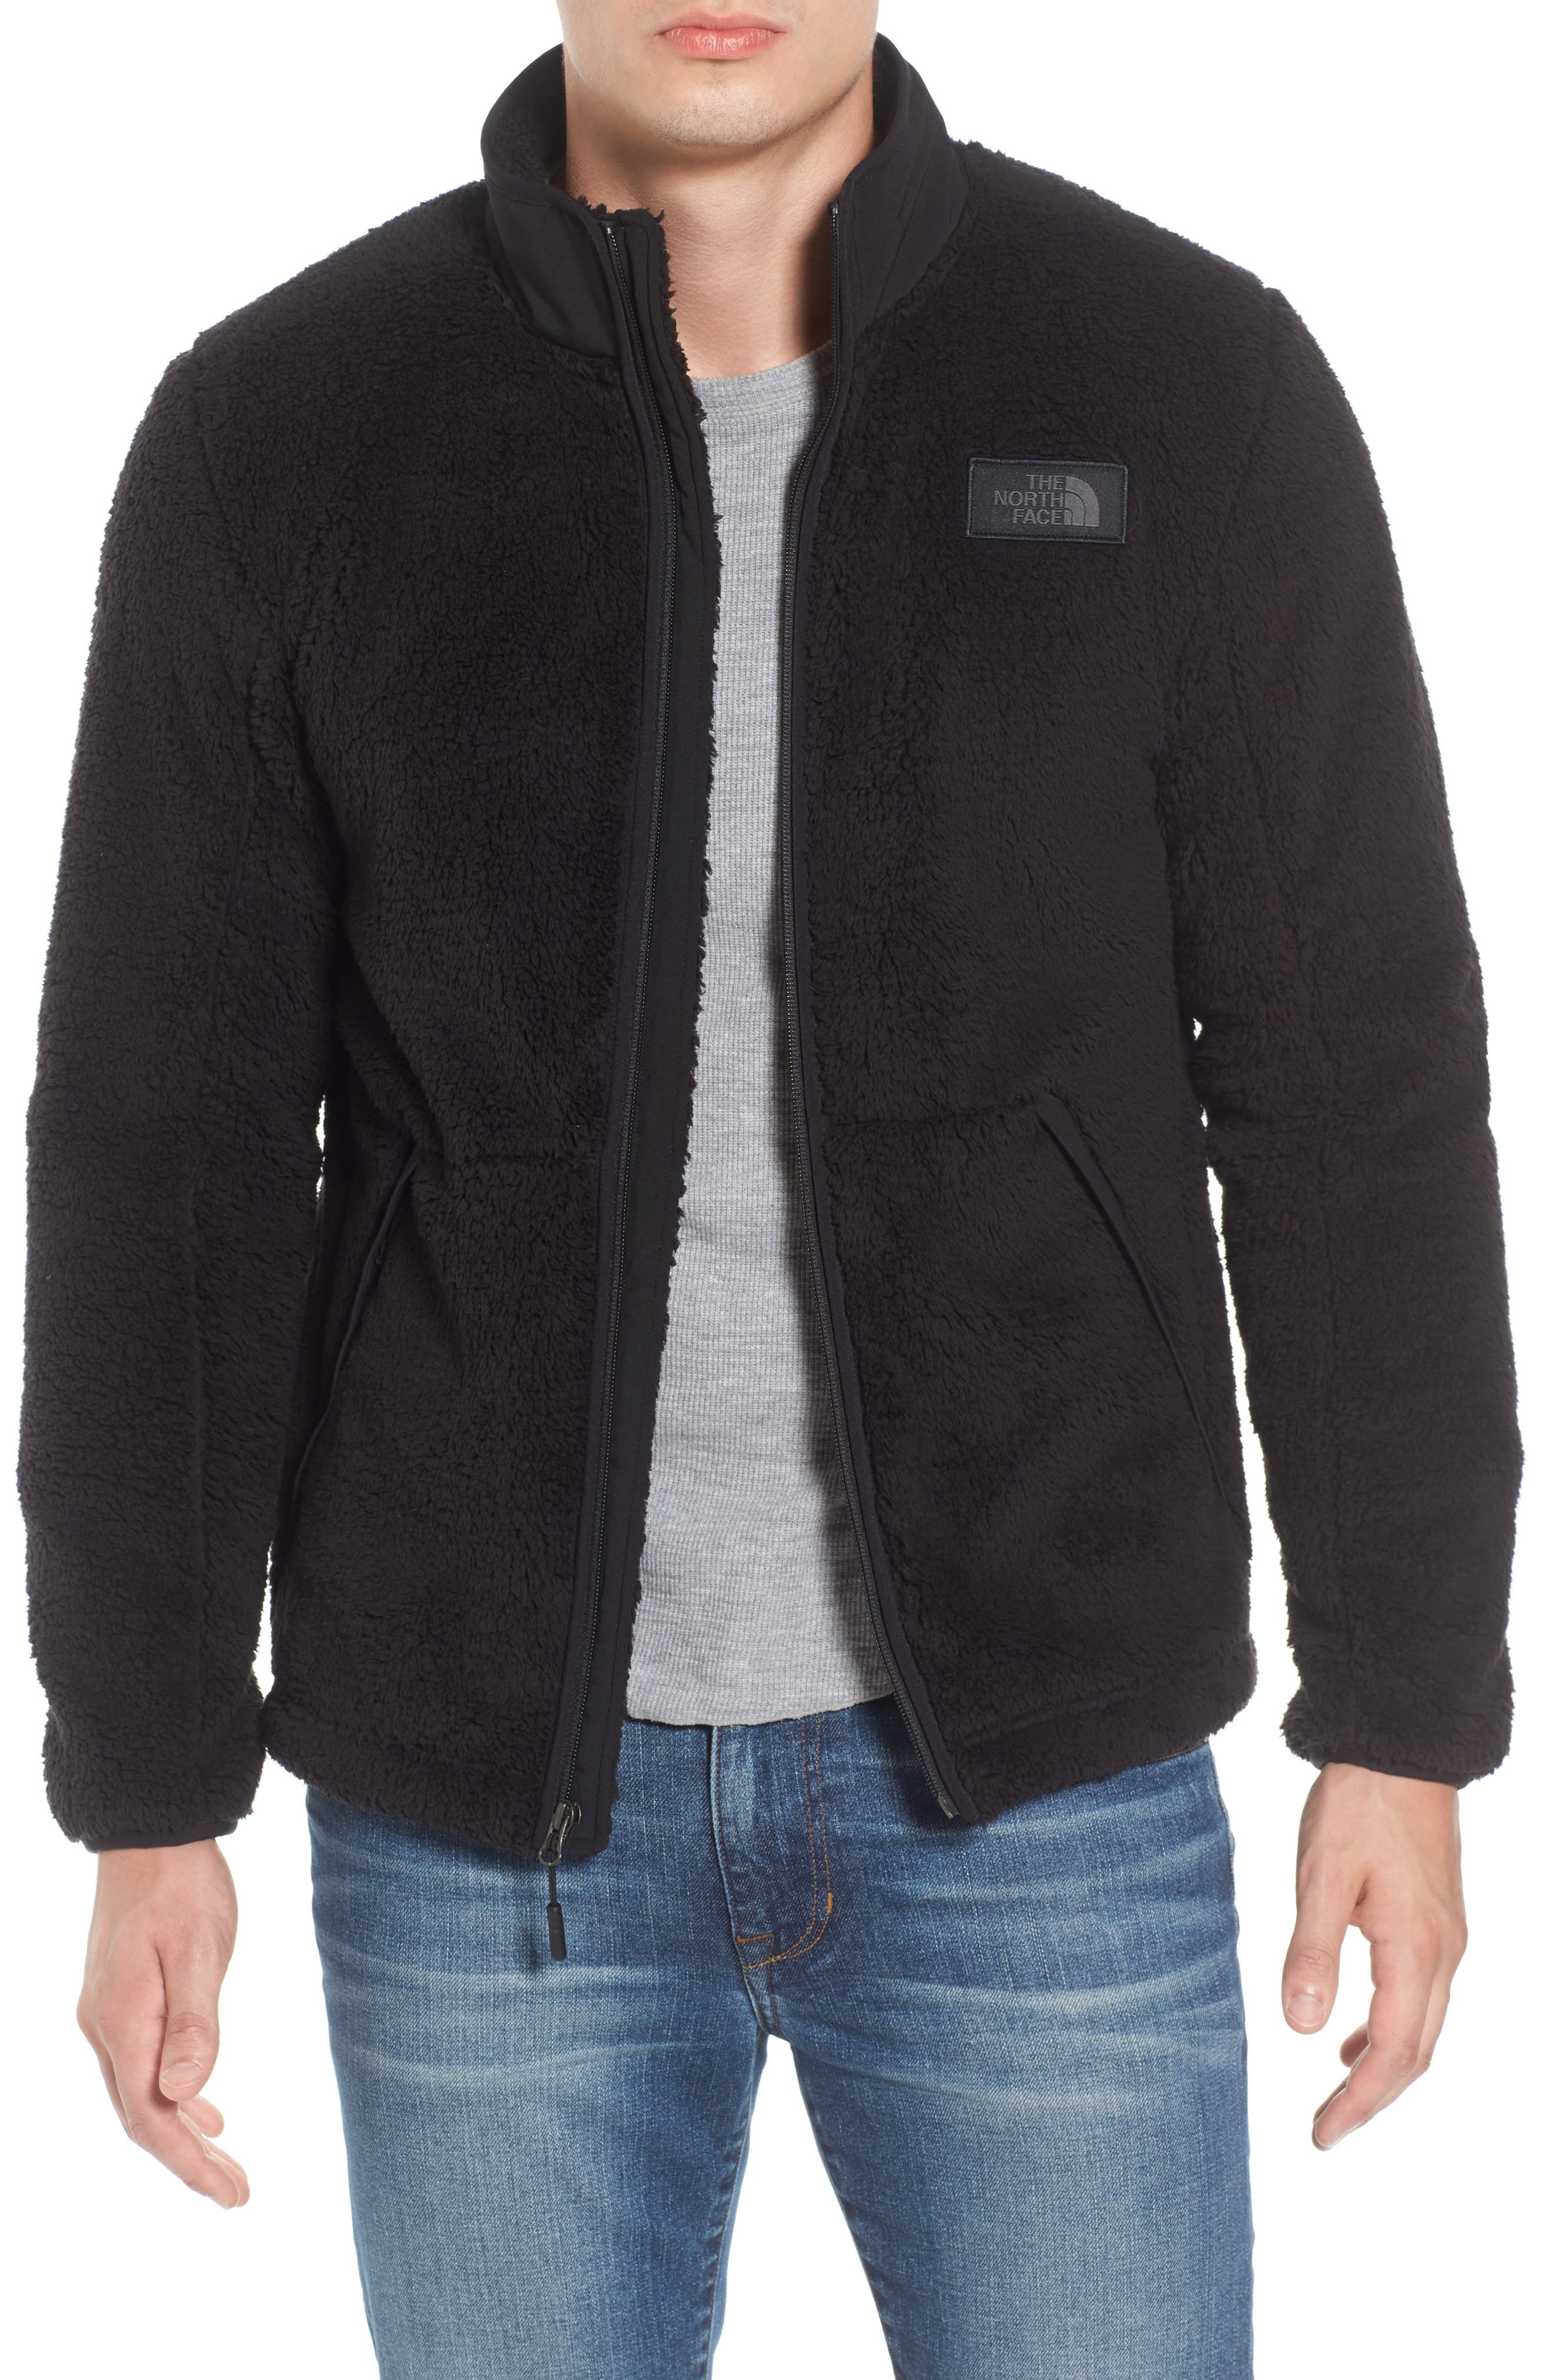 Main Image - The North Face Campshire Zip Fleece Jacket